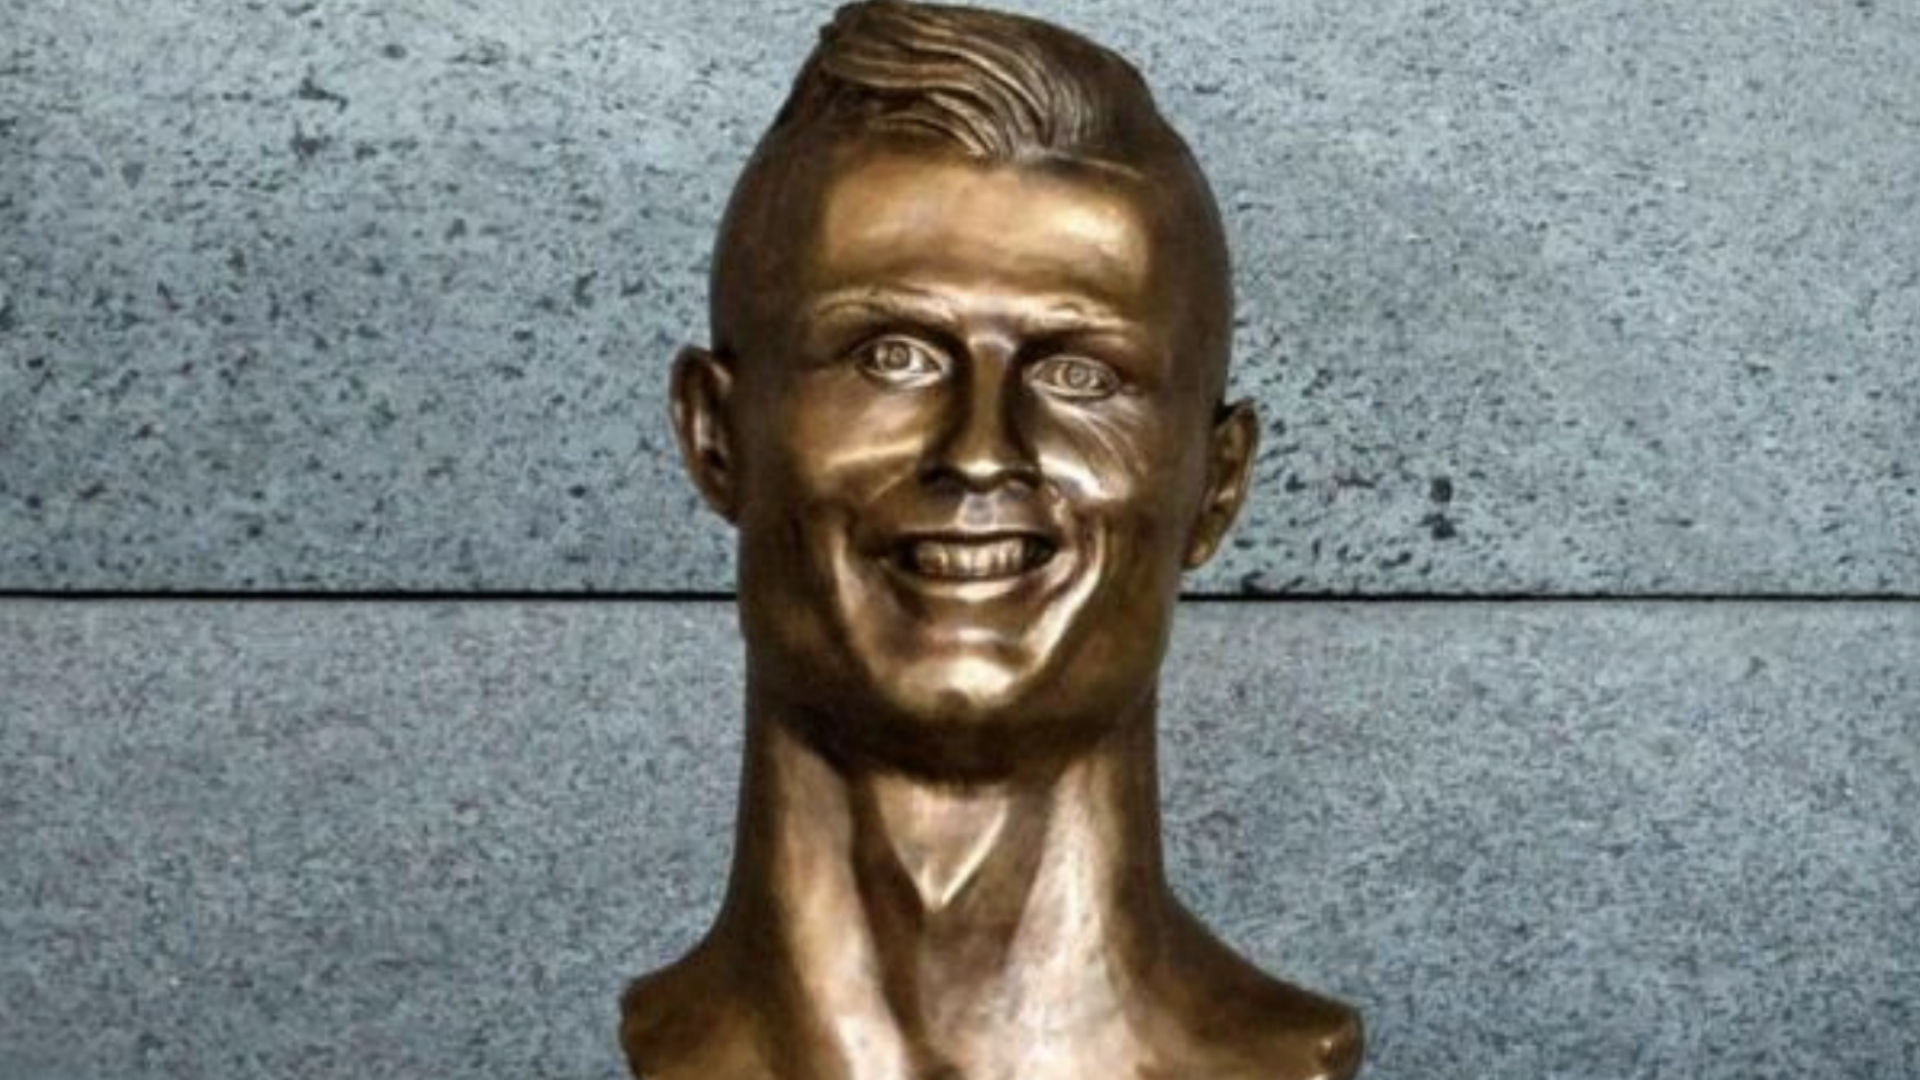 Infamous bust of Cristiano Ronaldo replaced at Madeira Airport